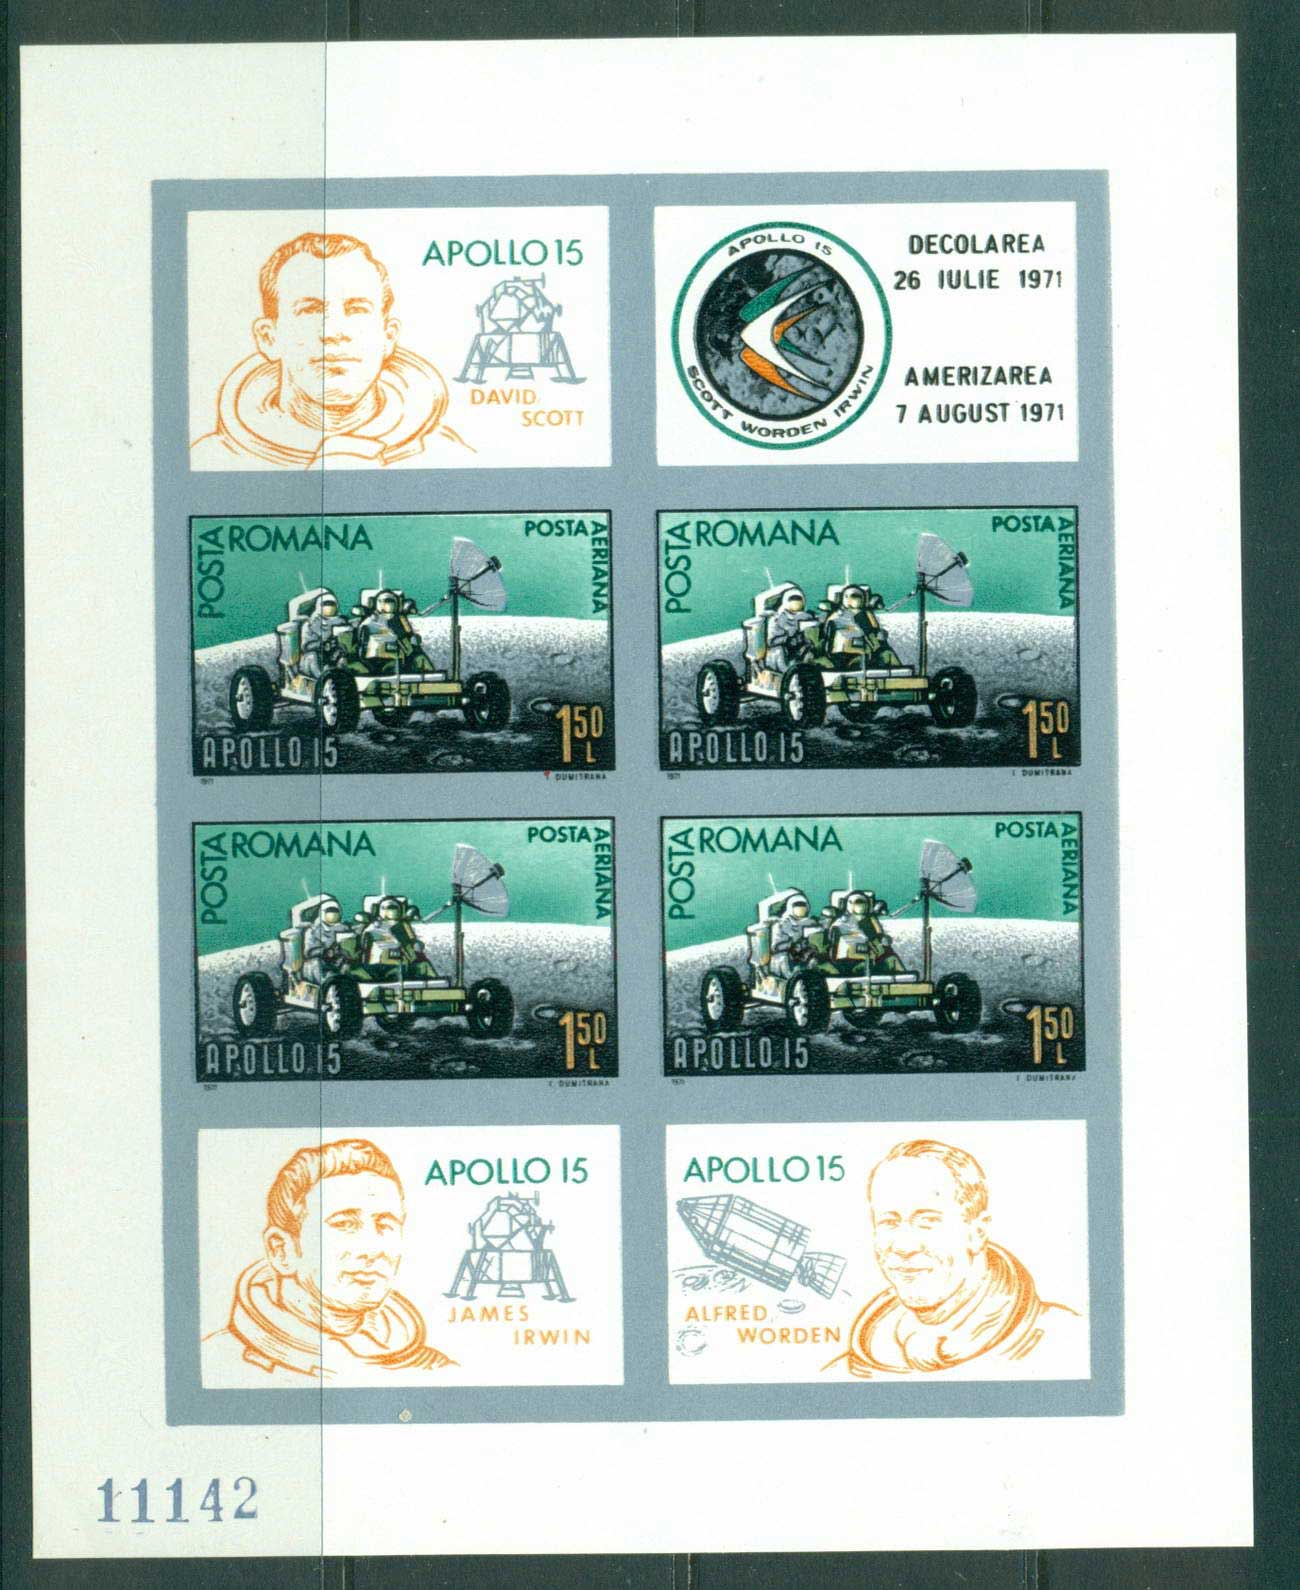 Romania 1971 Apollo 15 Moon landing IMPERF MS MUH lot57415